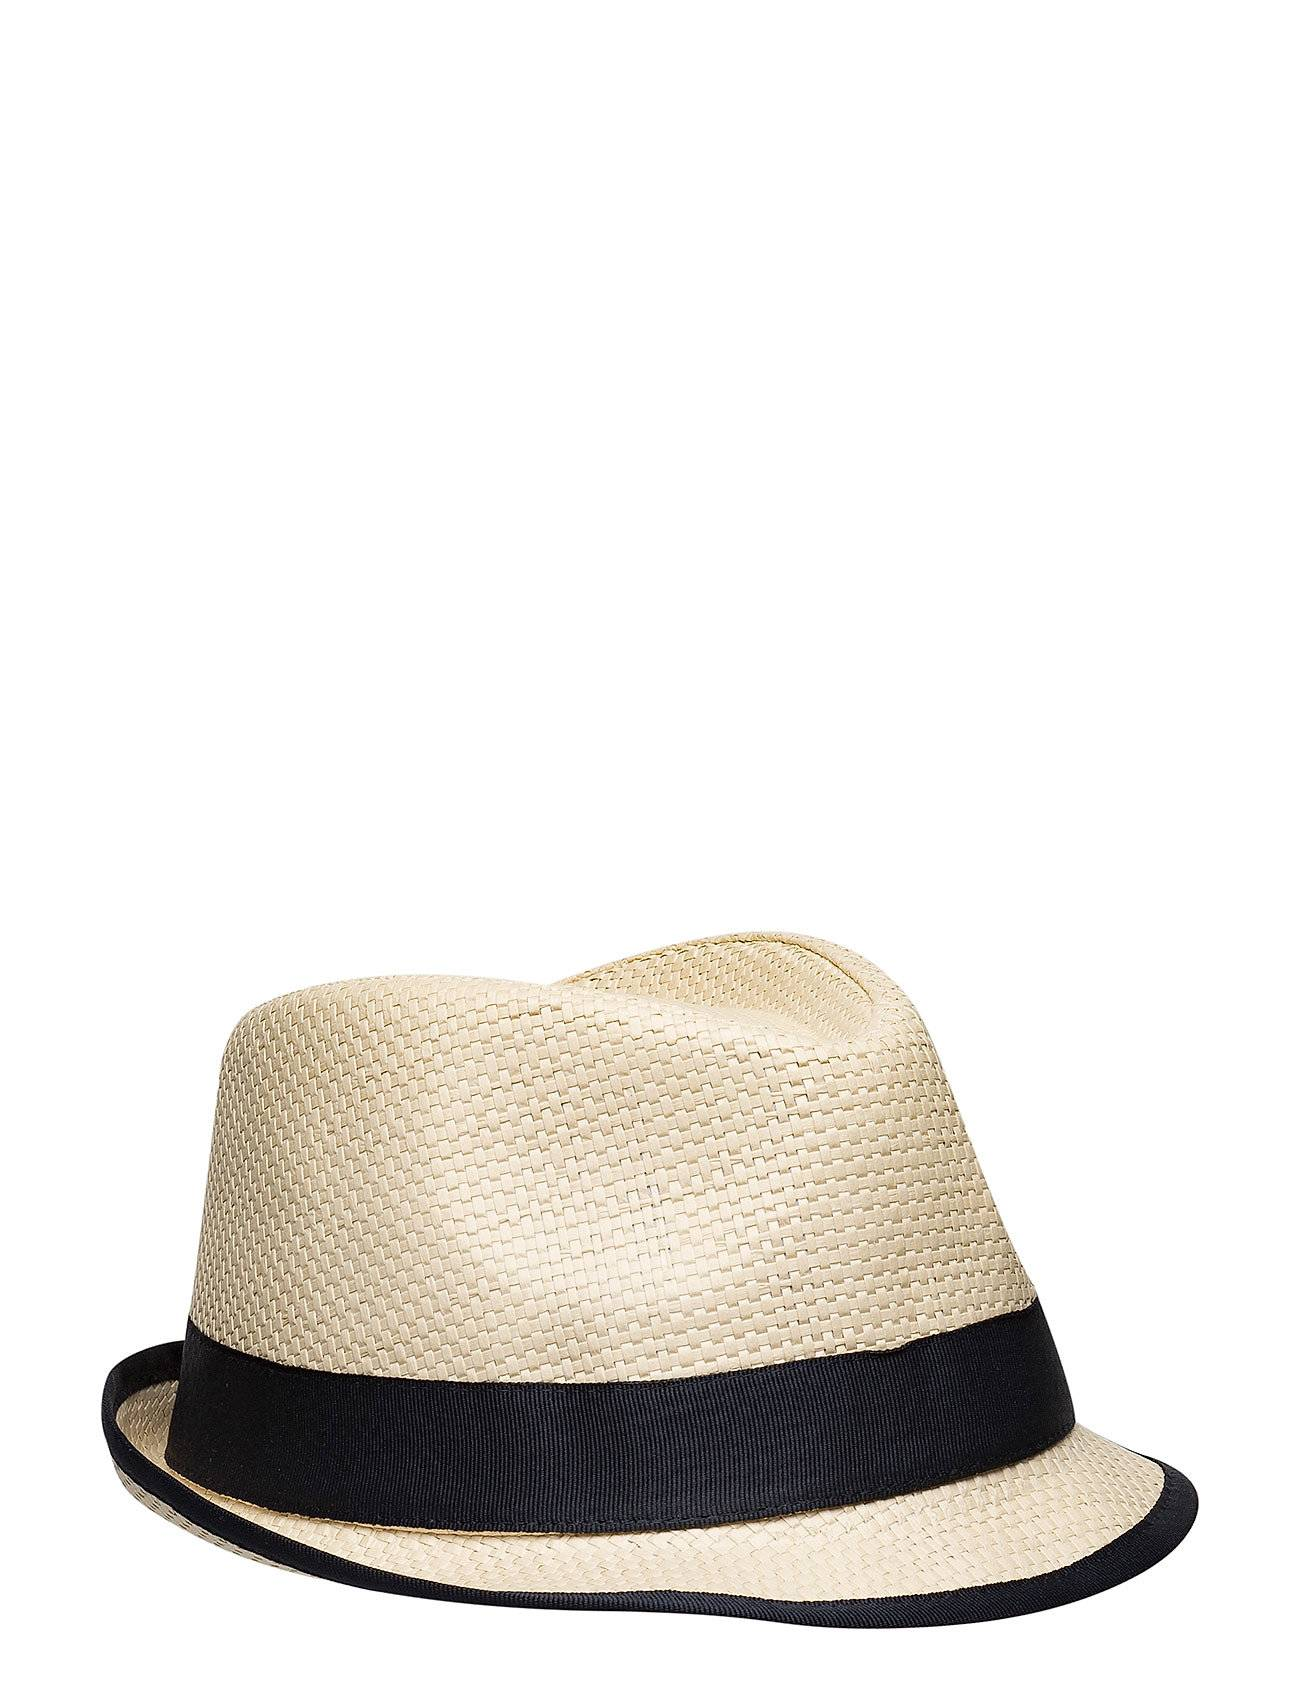 Fred Perry Straw Trilby